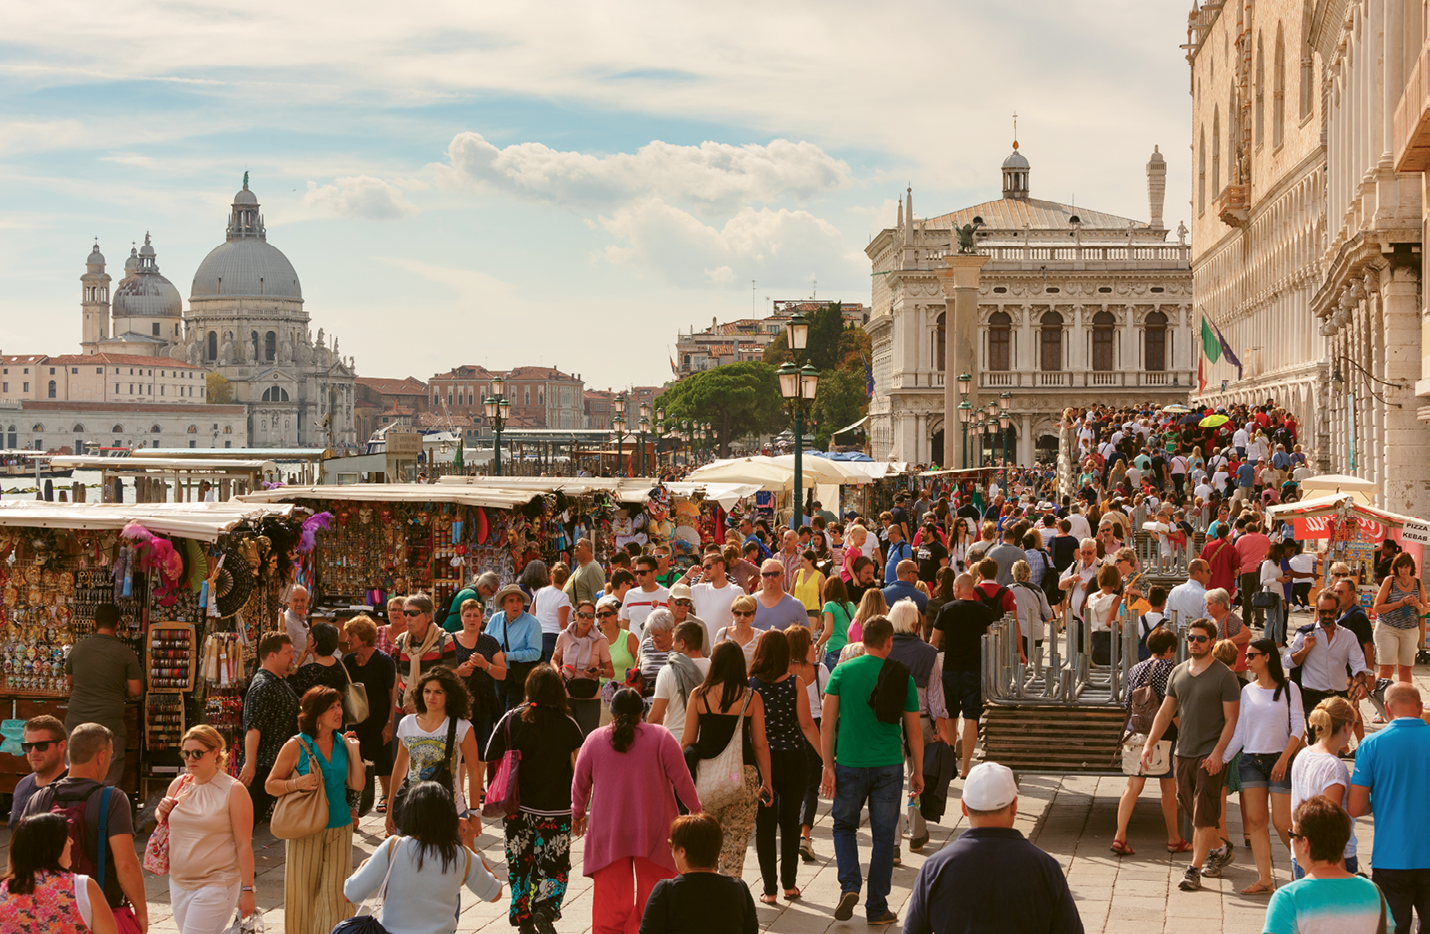 Last fall, The Post and Courier ran an op-ed by art historian and If Venice Dies author Salvatore Settis, who warns of unchecked tourism killing an historic city, such as Venice (shown here).